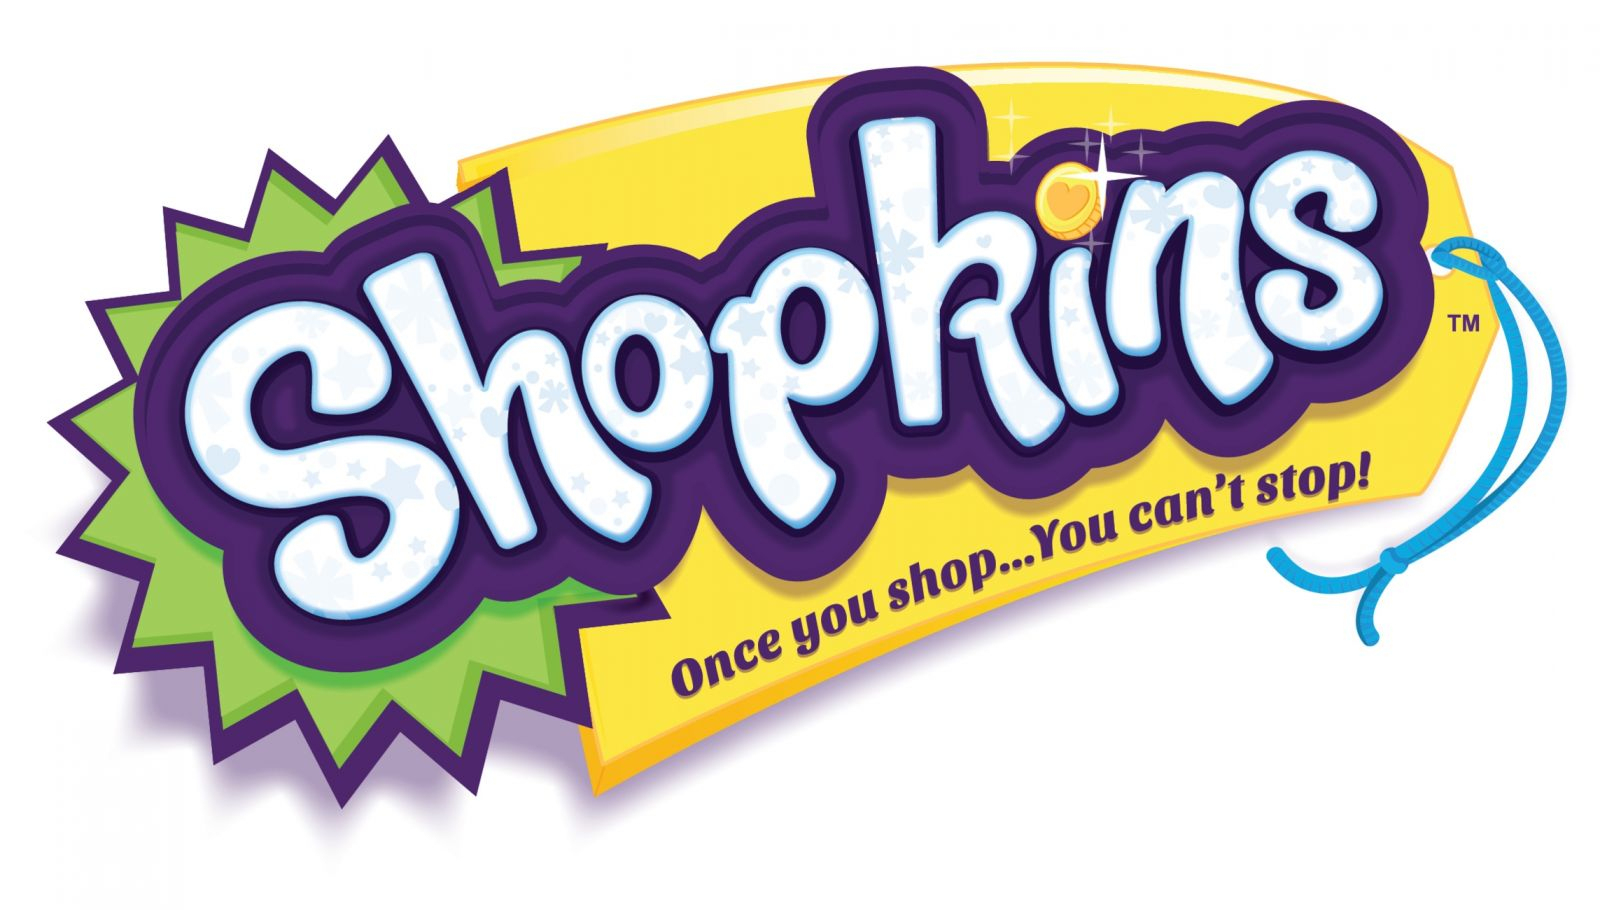 Shopkins Banner Png Royalty Free Download - Rr Collections - Shopkins Banner Printable Free